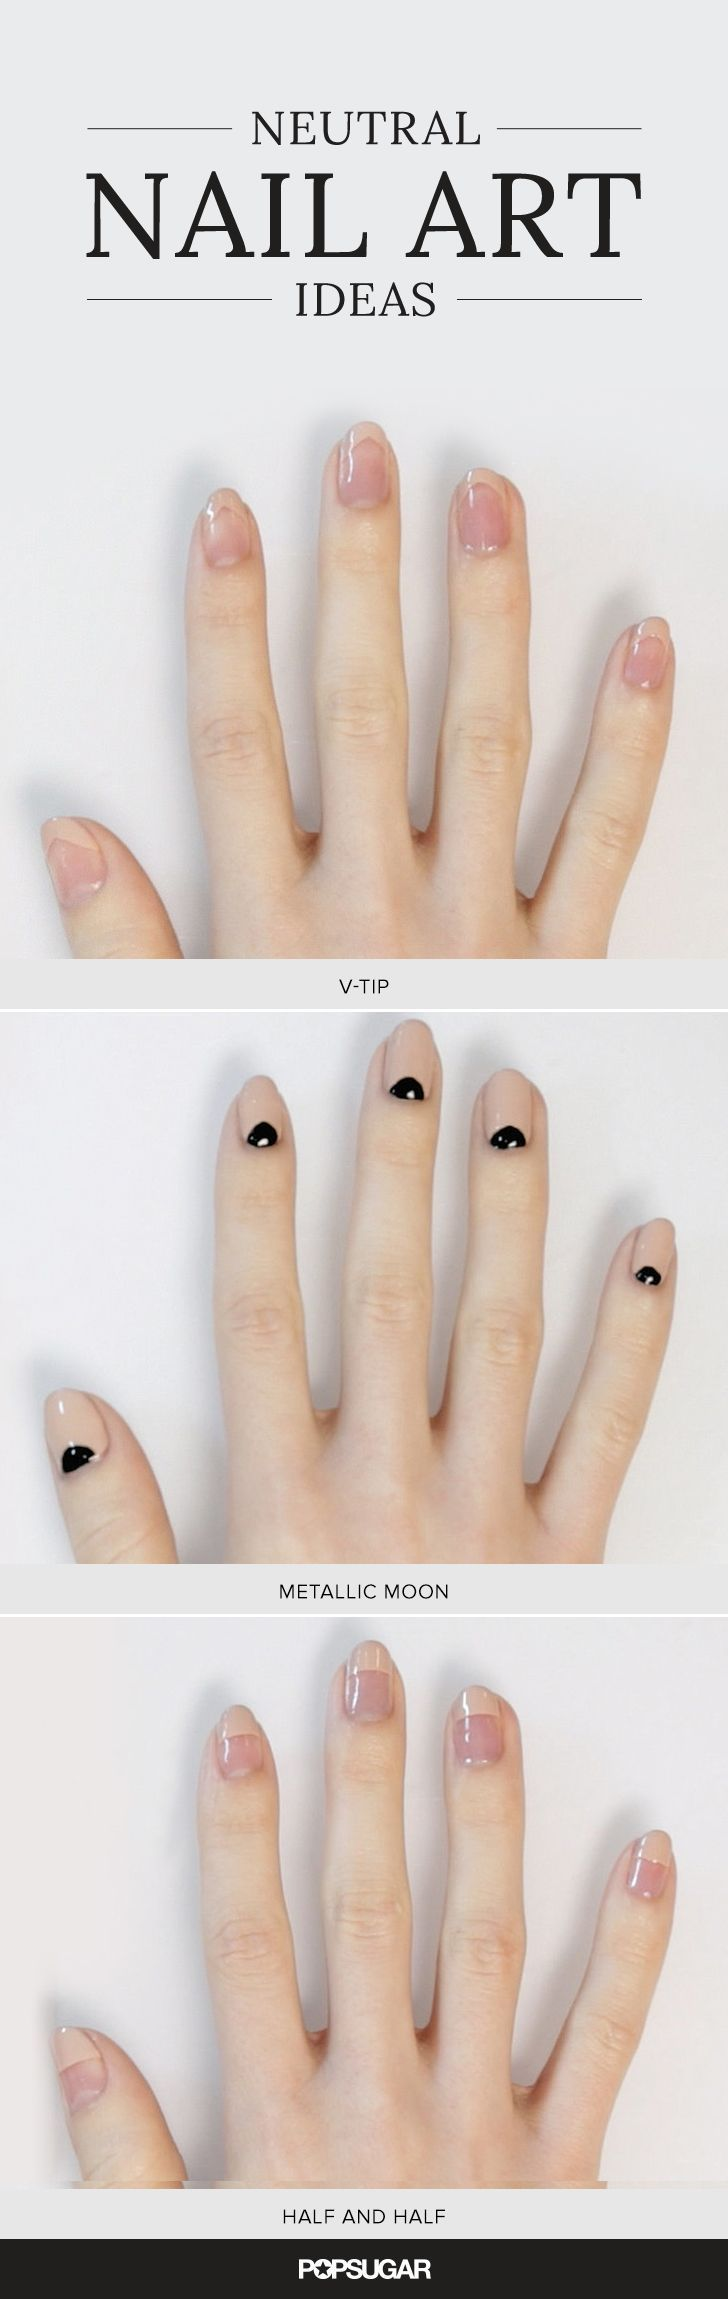 Got nude nail polish? These Neutral nail art ideas are chic yet sophisticated. Perfect for weddings and working women.